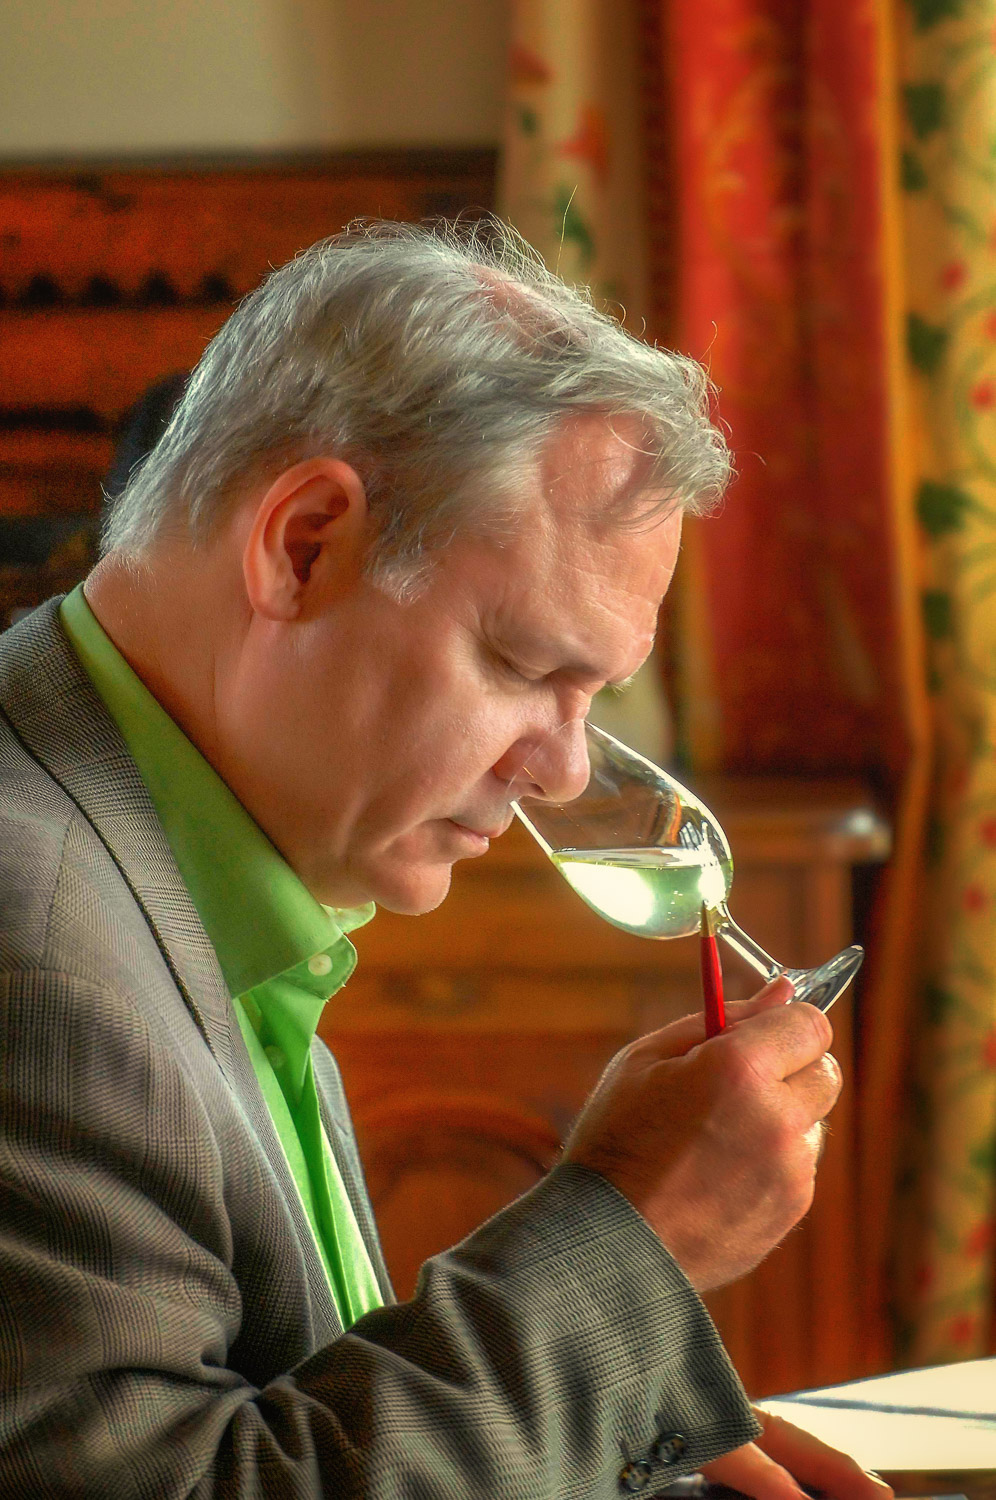 Lyn tasting vin claire at Champagne Mumm